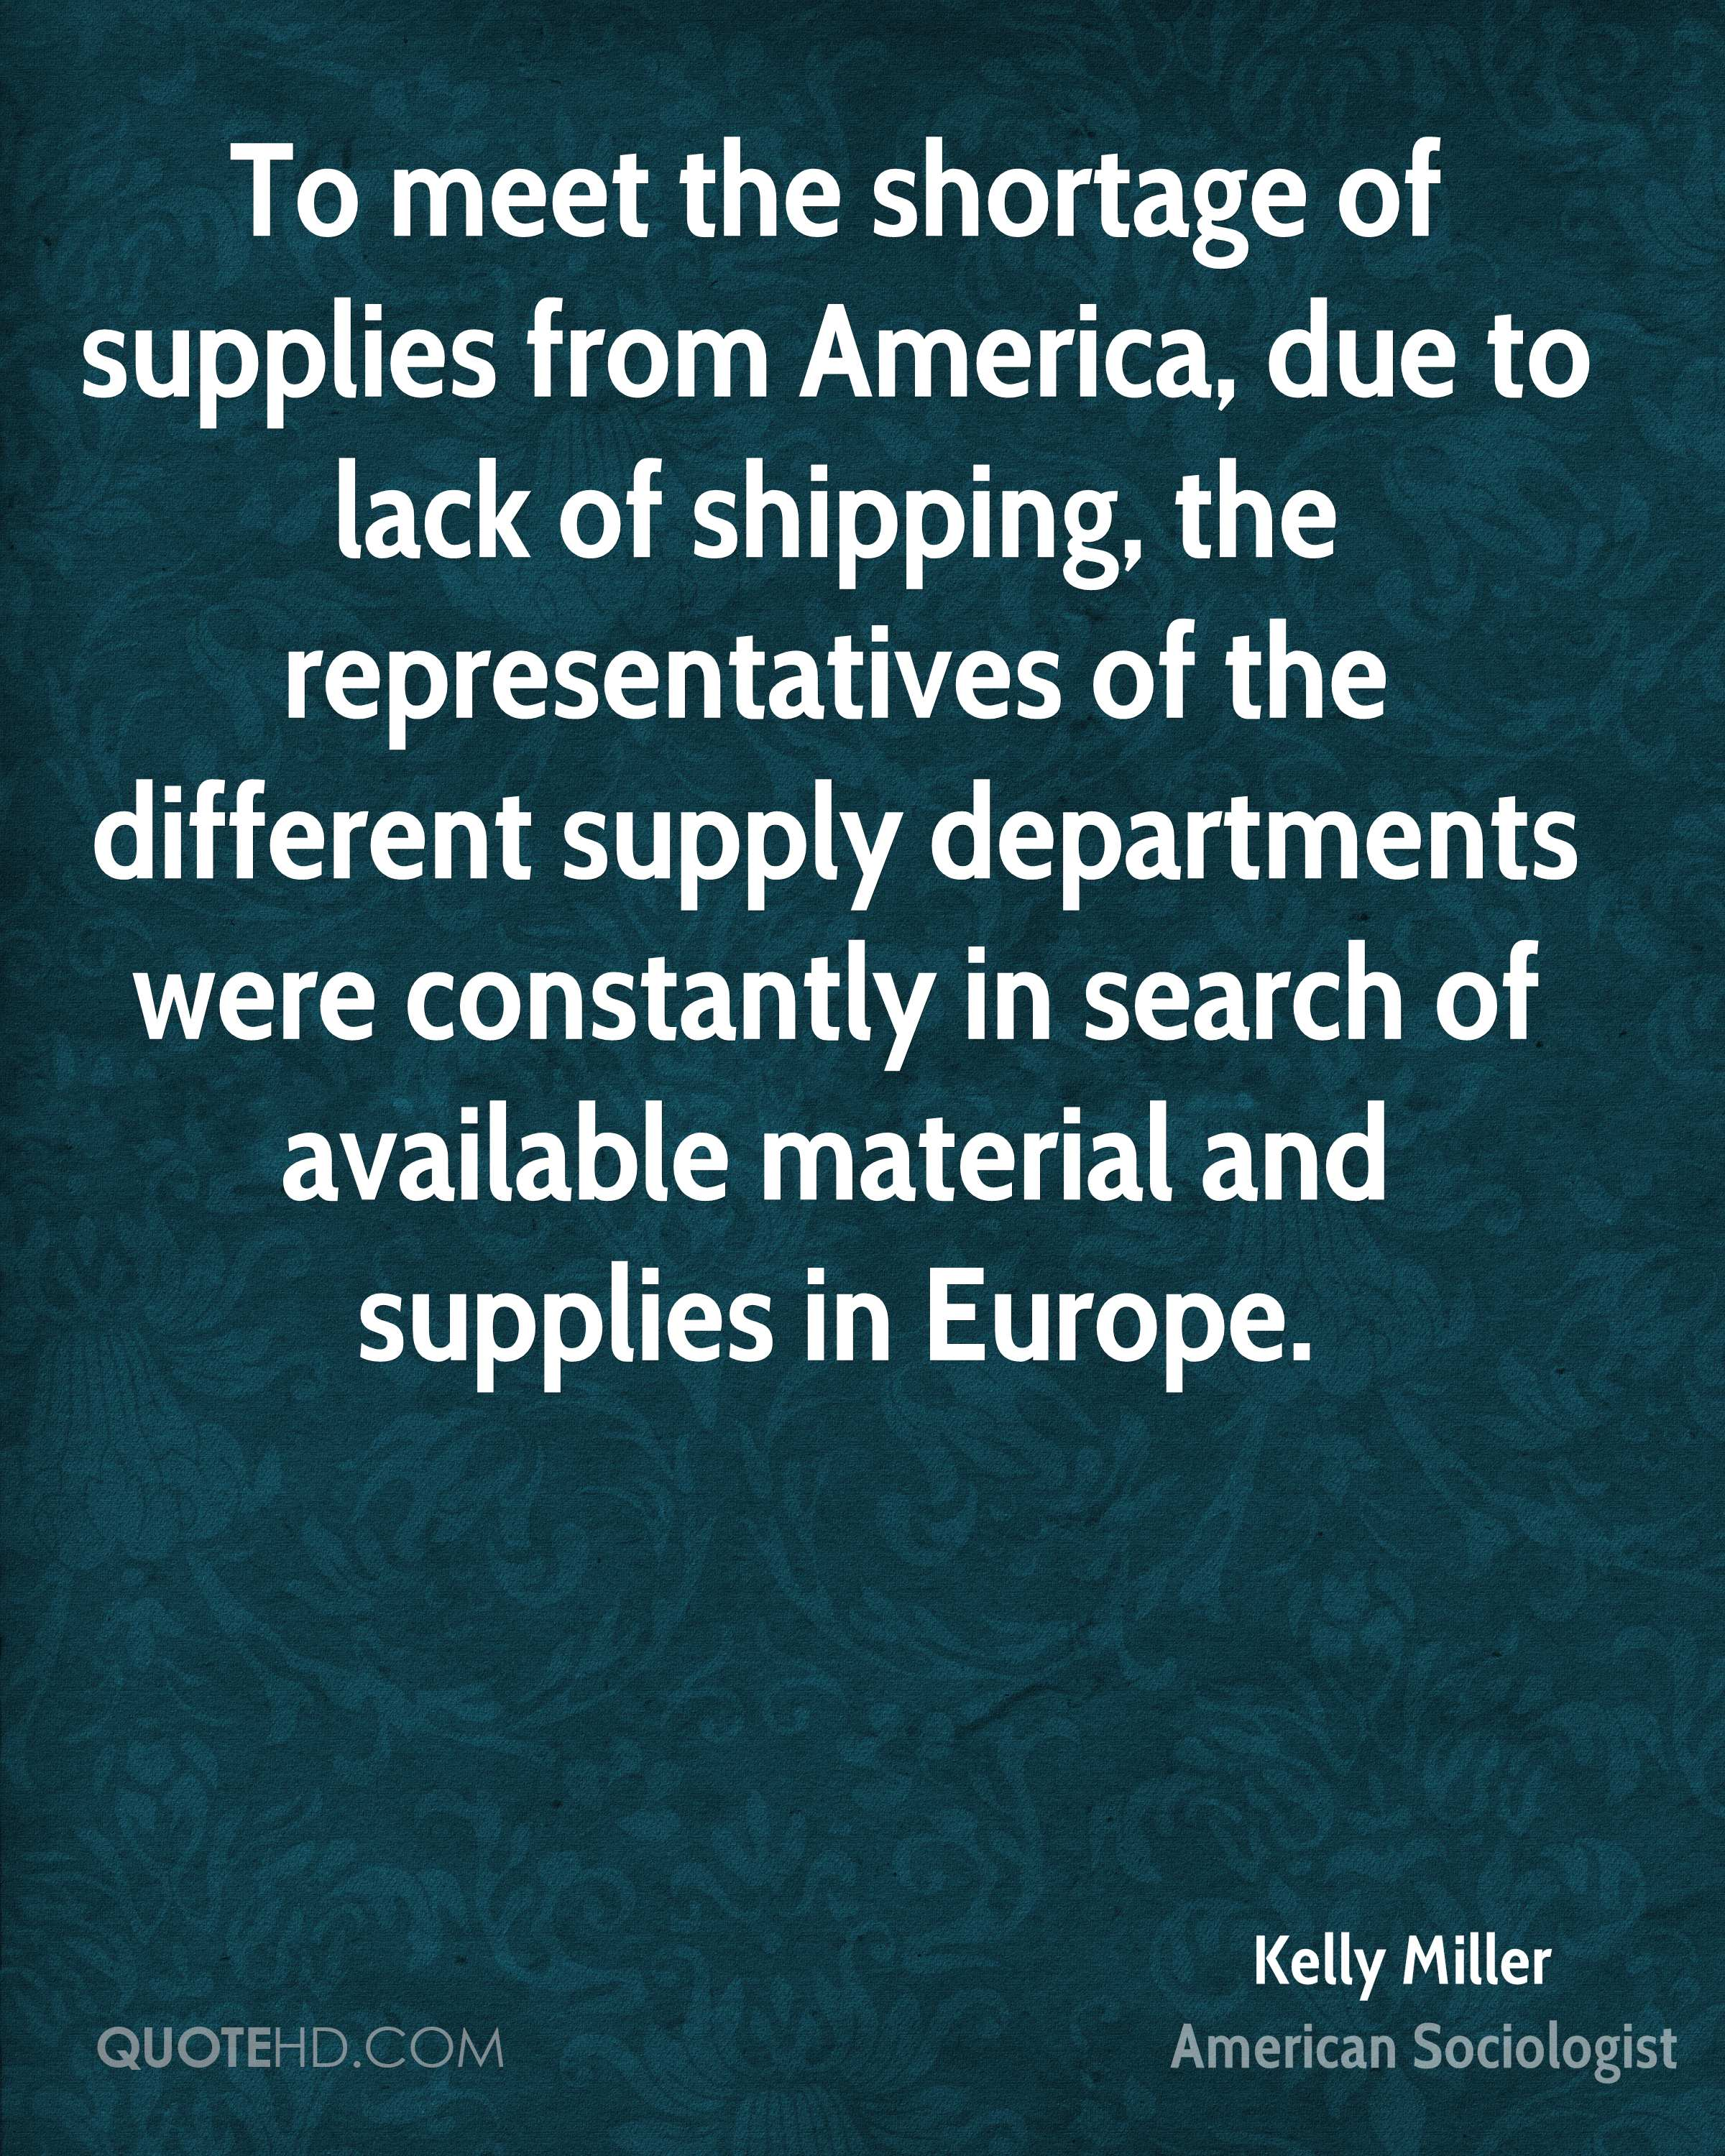 To meet the shortage of supplies from America, due to lack of shipping, the representatives of the different supply departments were constantly in search of available material and supplies in Europe.